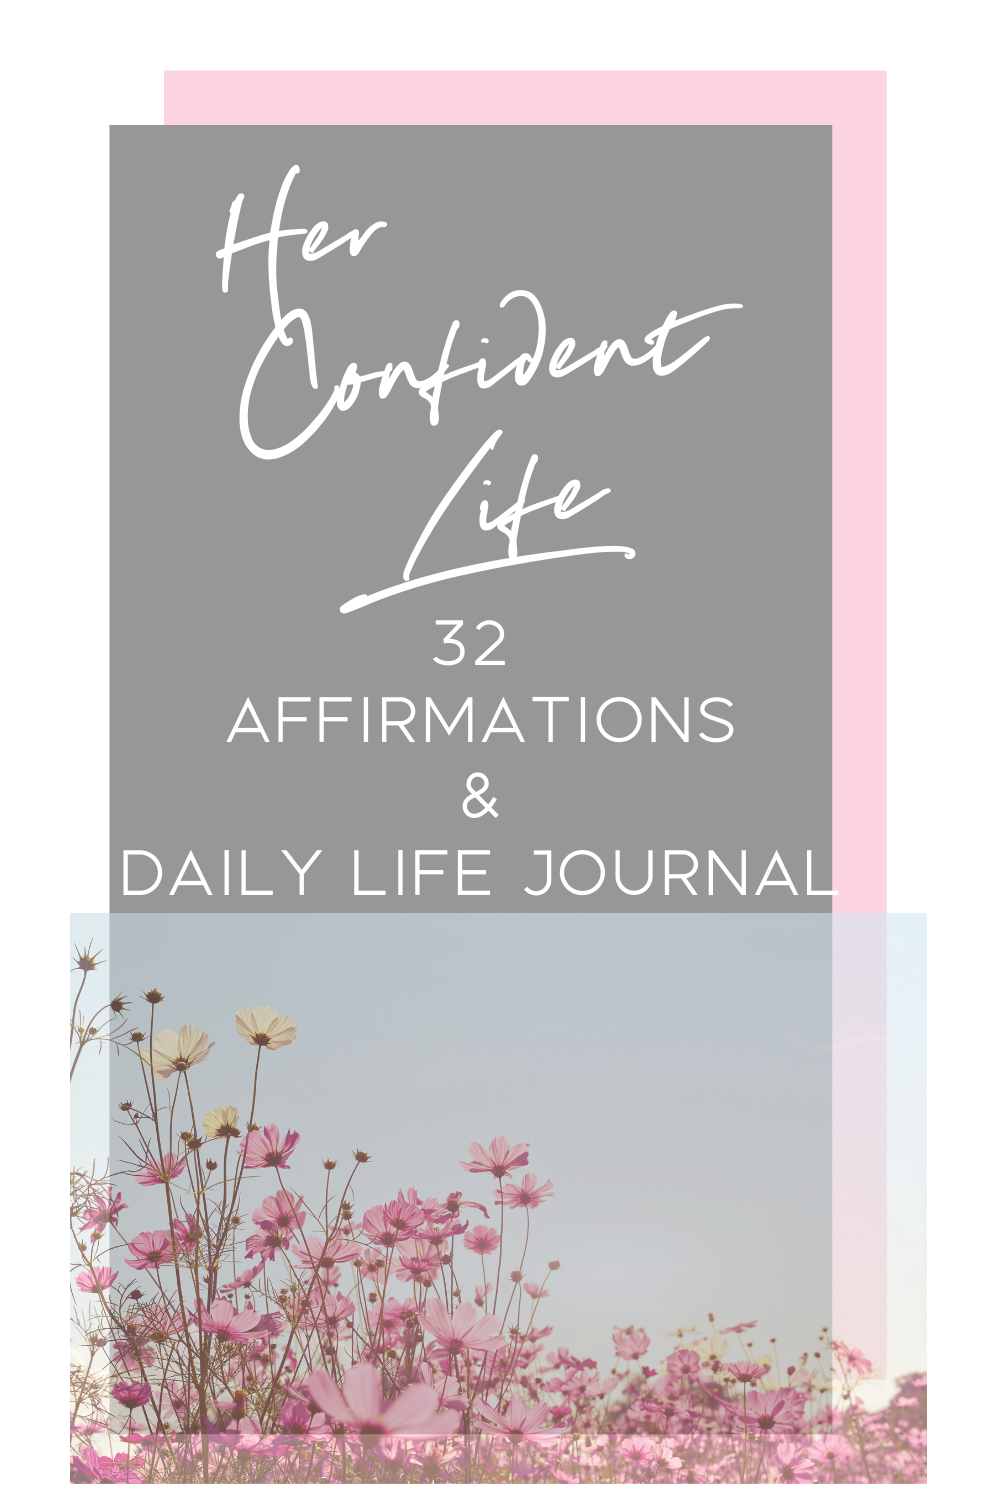 Affirmations & Daily Life Journal